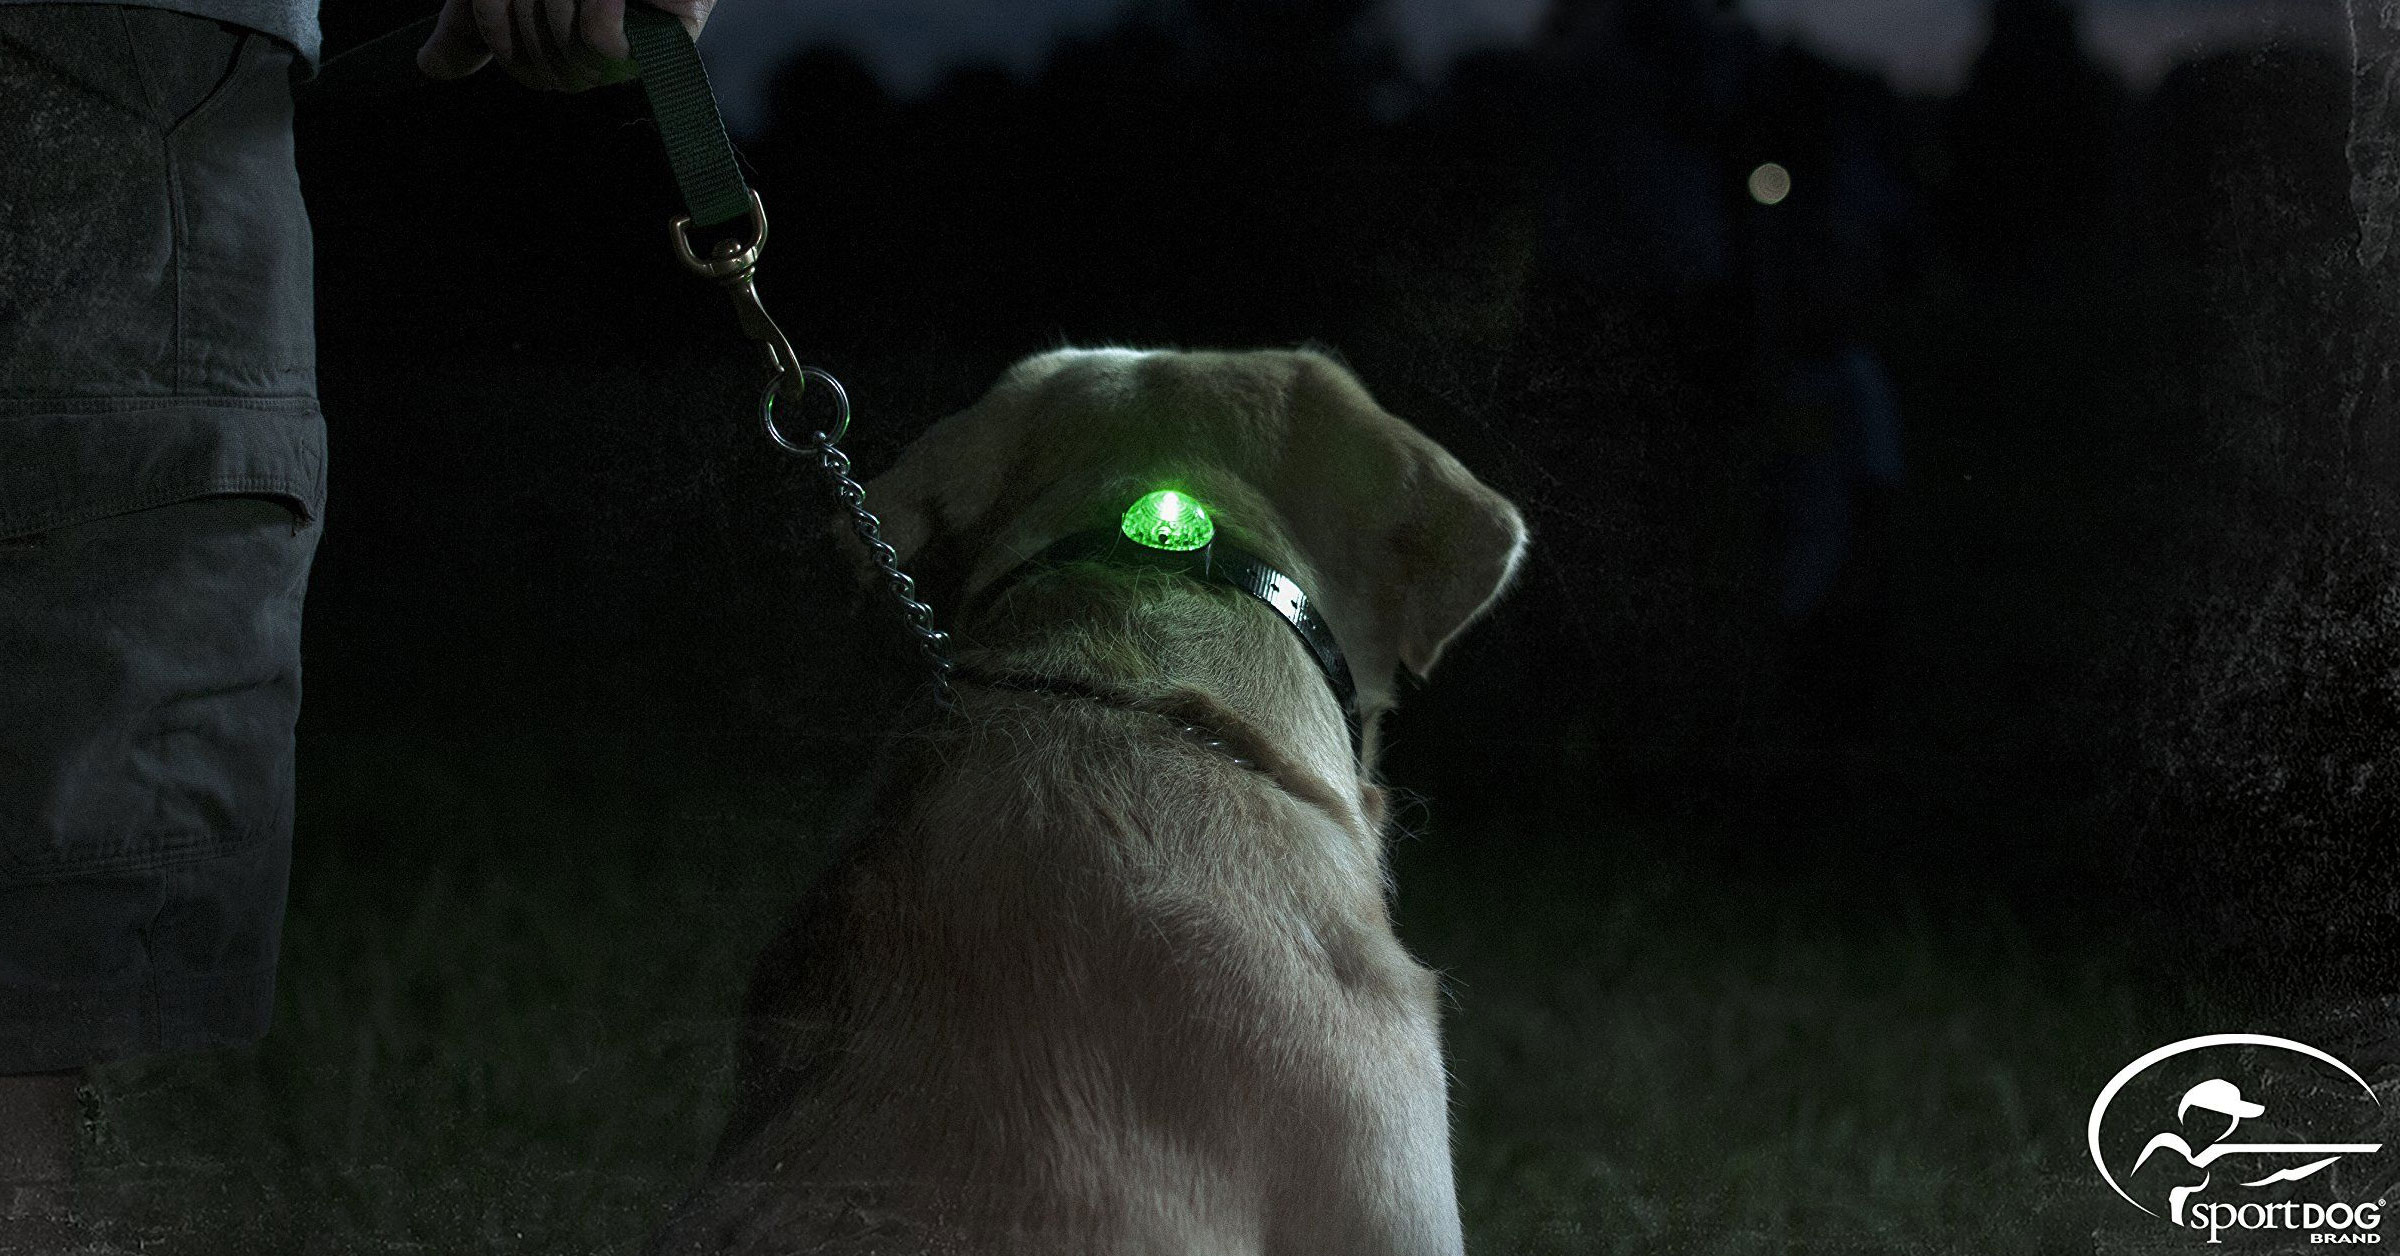 Night time safety collar light for dogs from SportDog